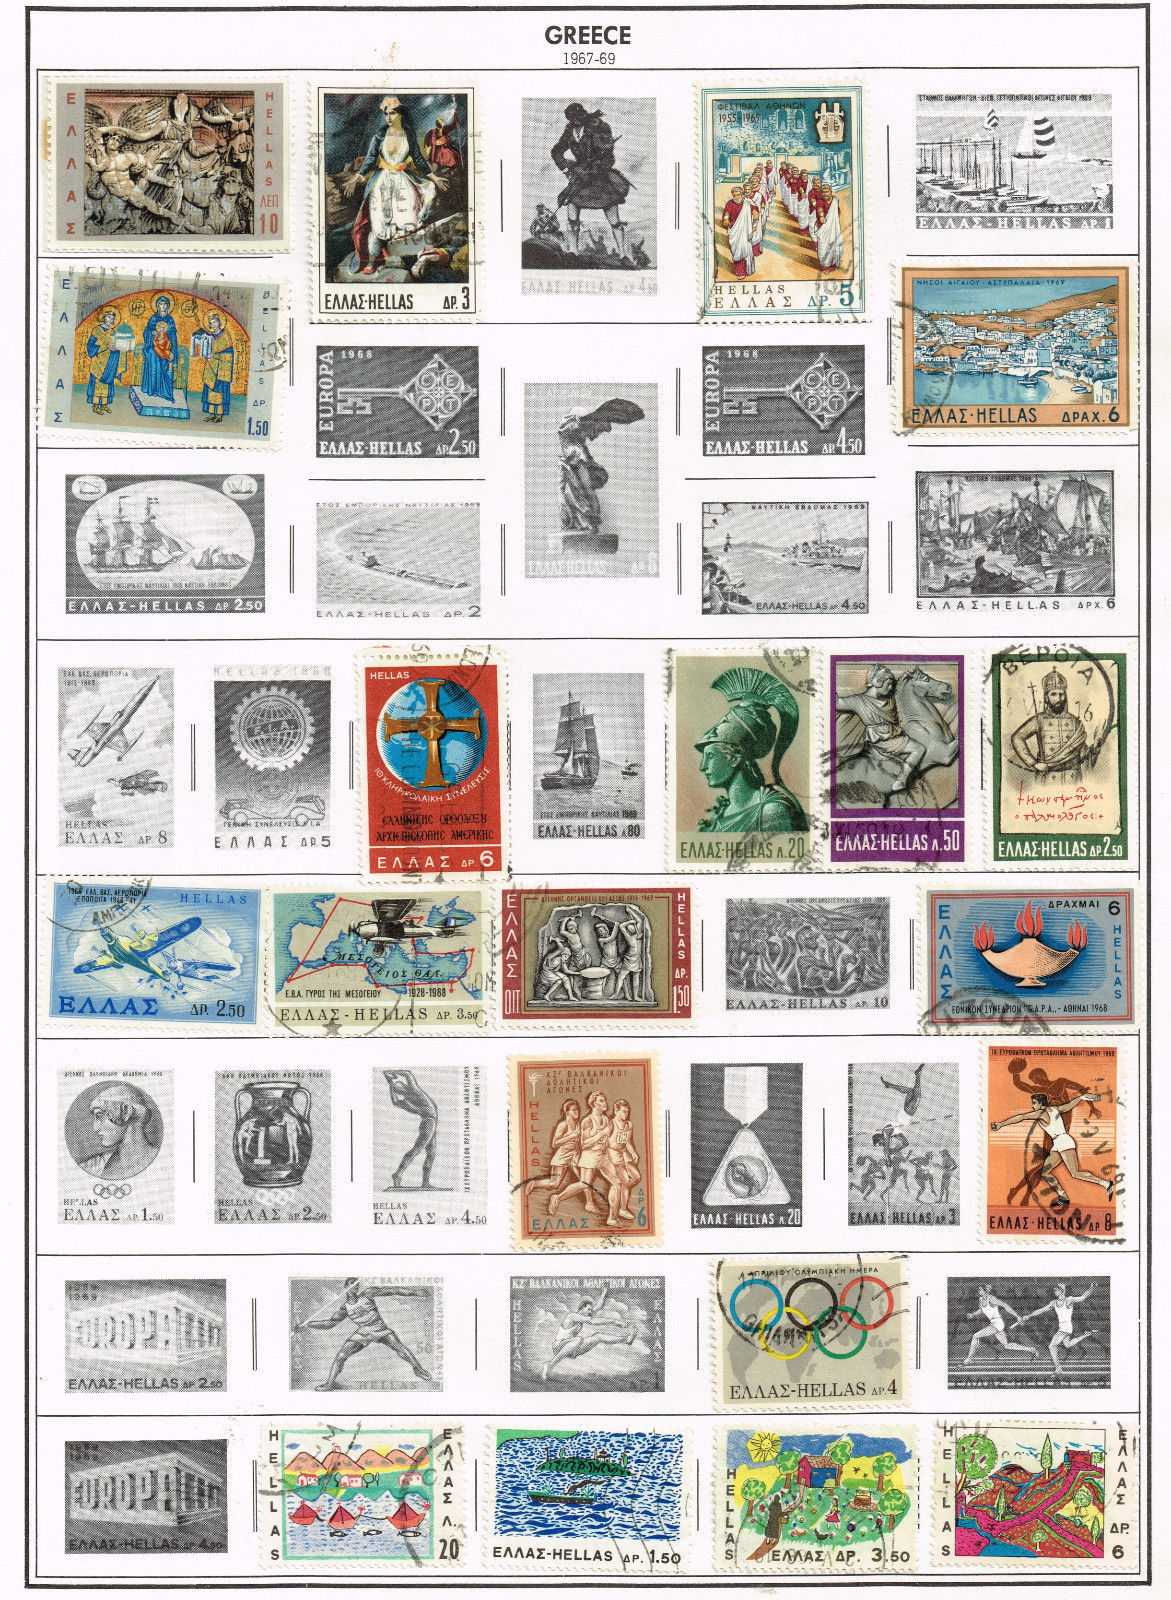 110 Greece 1961 - 1971 stamps image 4